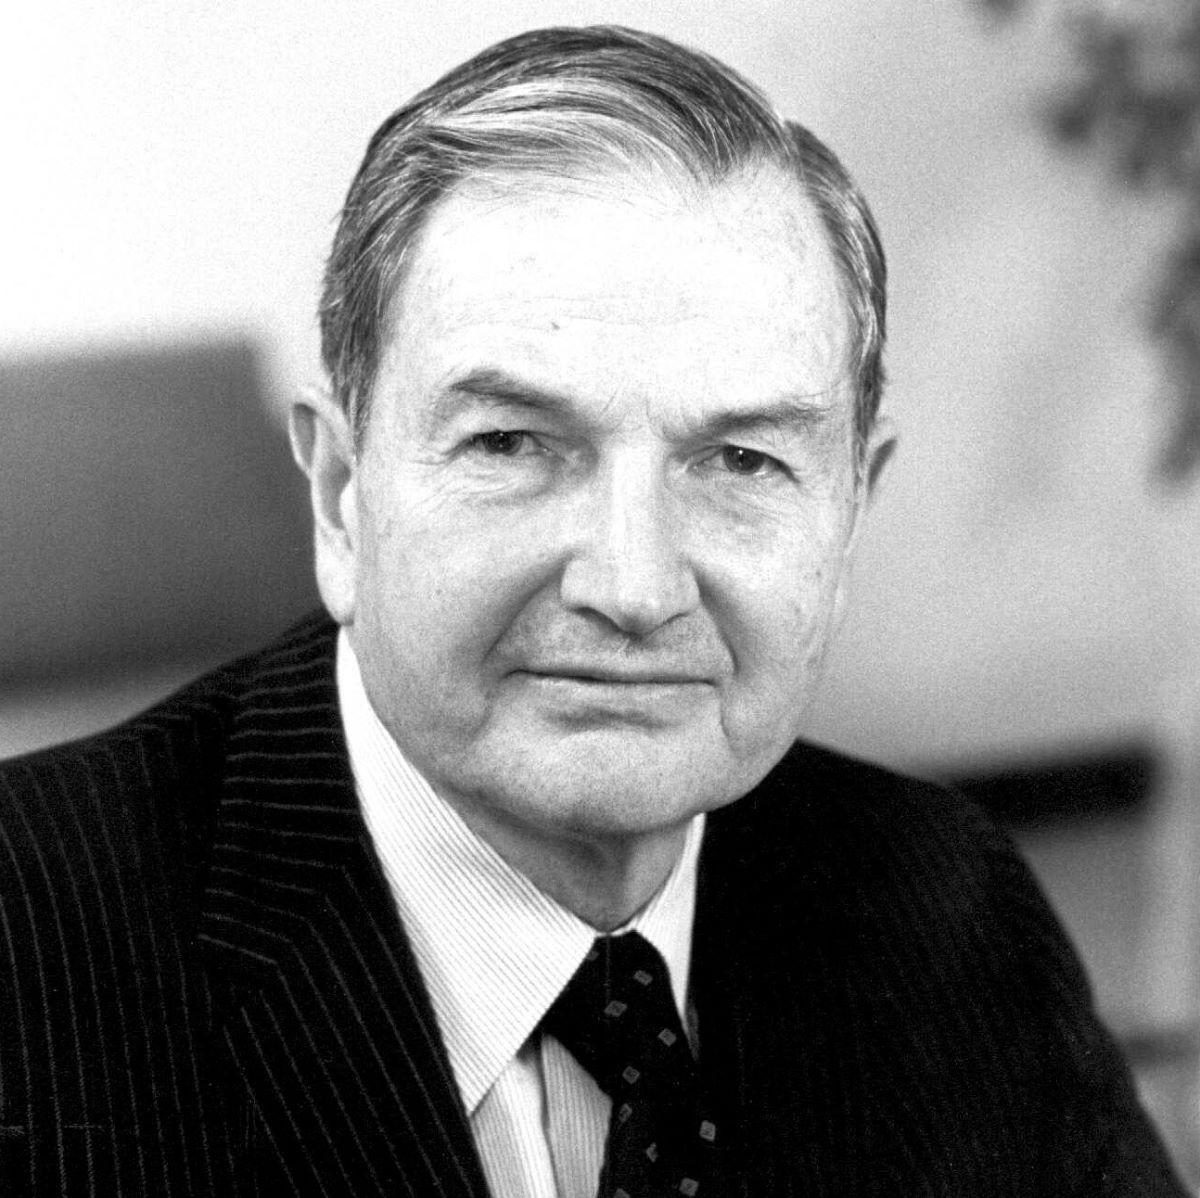 David Rockefeller, philanthropist and banker - obituary